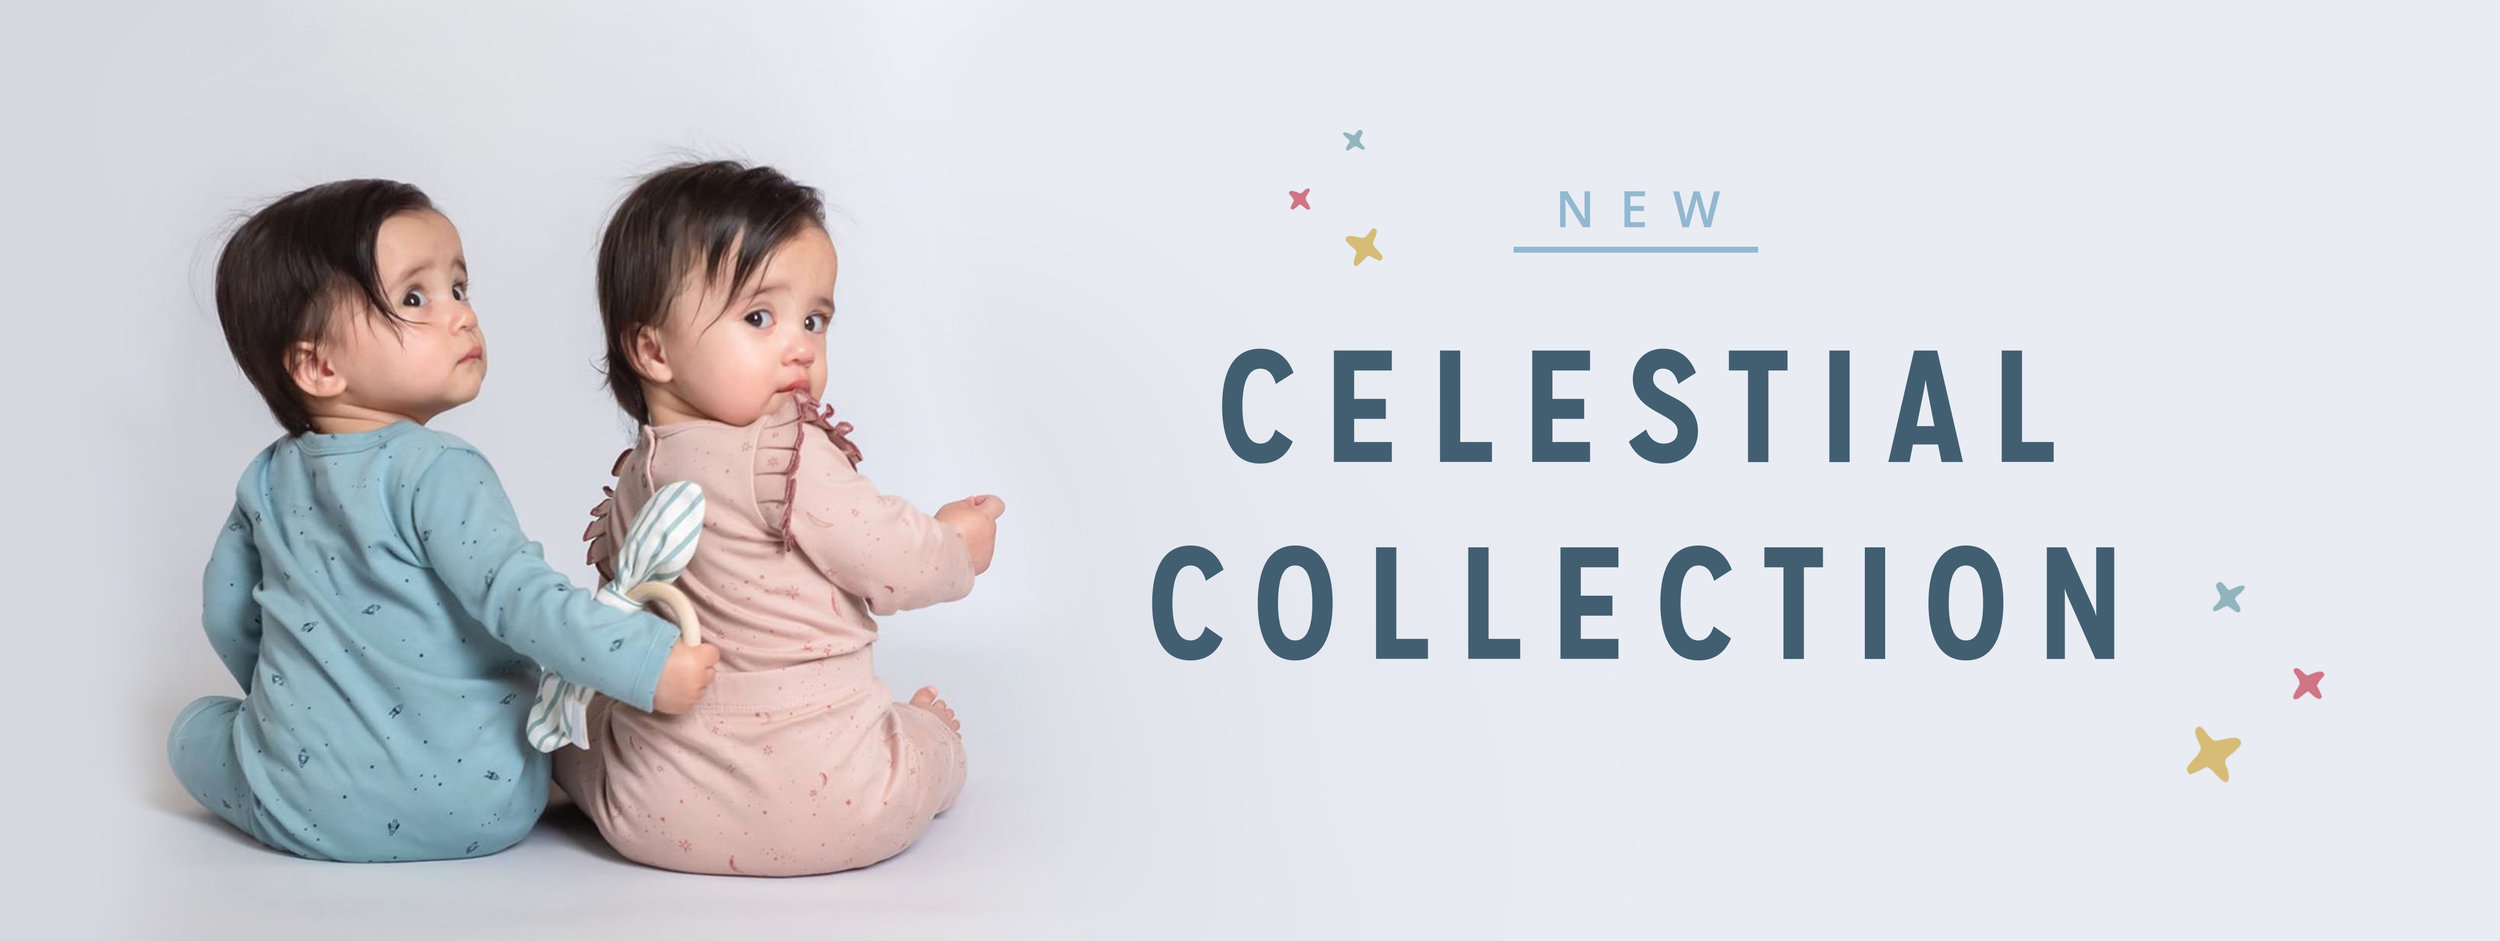 New Celestial Collection Header Image